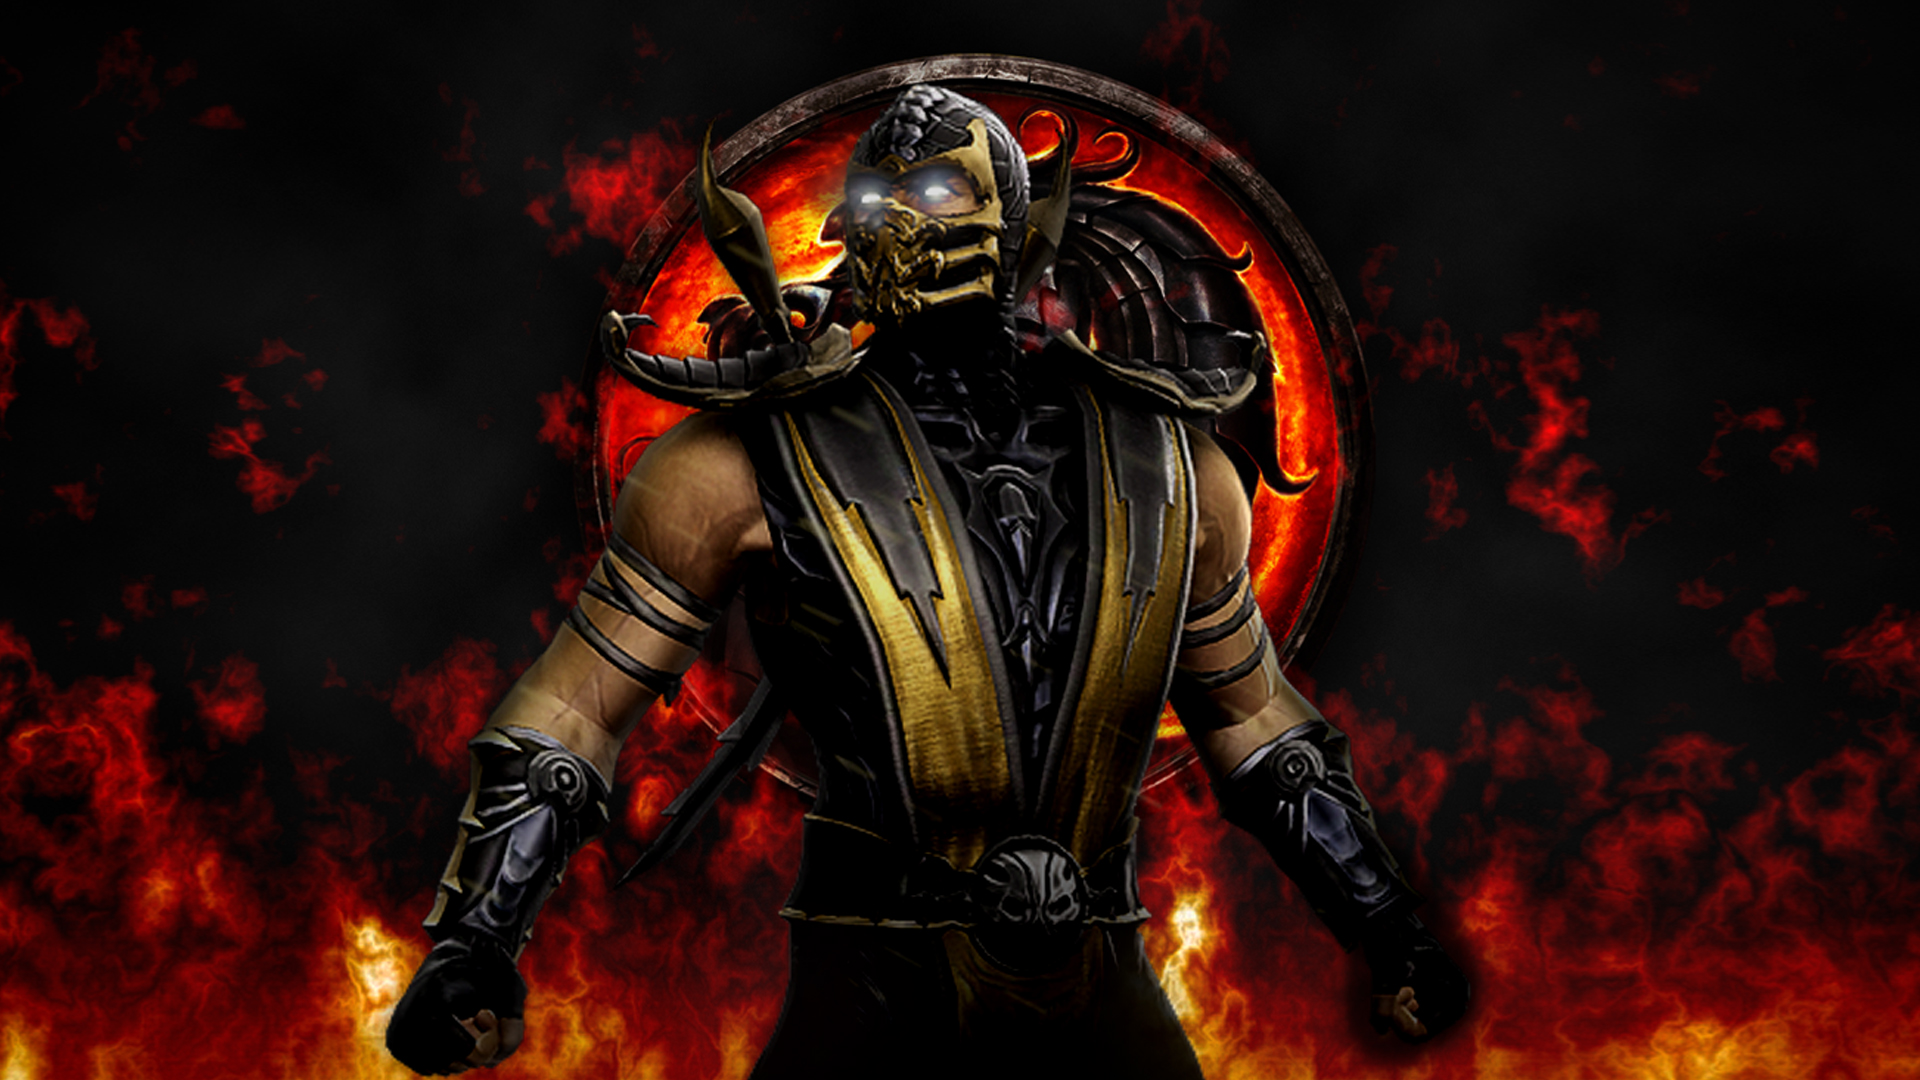 images of scorpion from mortal kombat for wallpaper hd